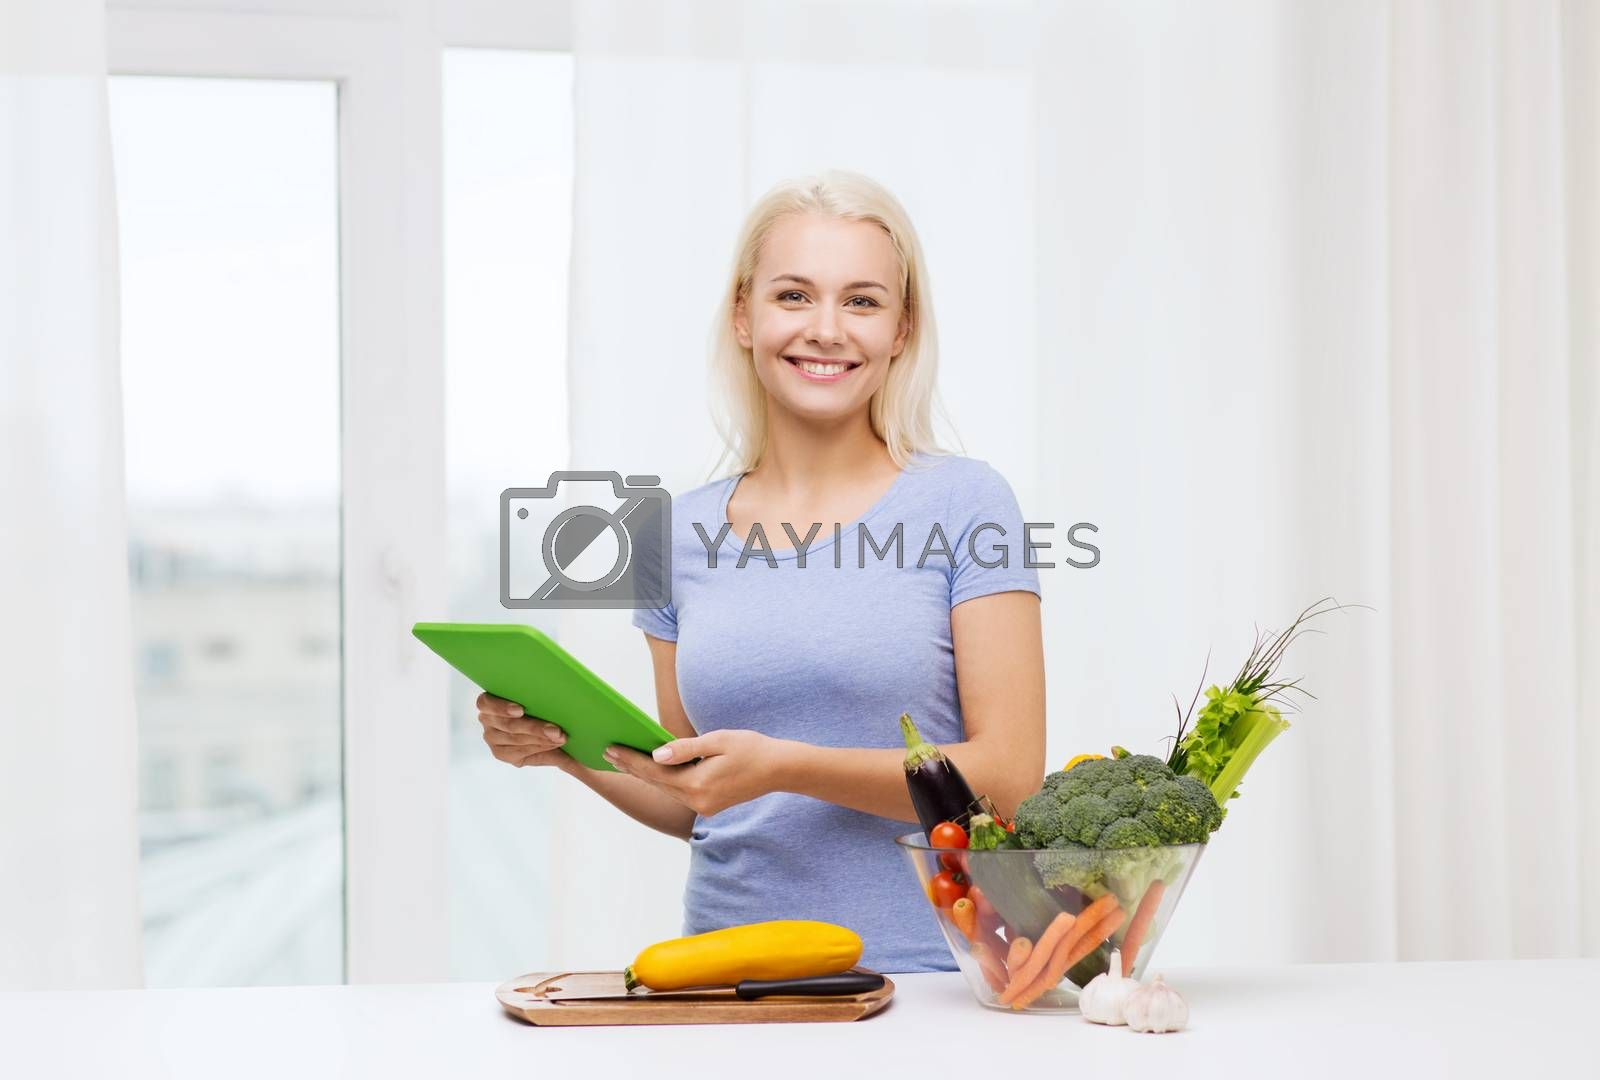 healthy eating, cooking, vegetarian food, technology and people concept - smiling young woman with tablet pc computer and bowl of vegetables at home